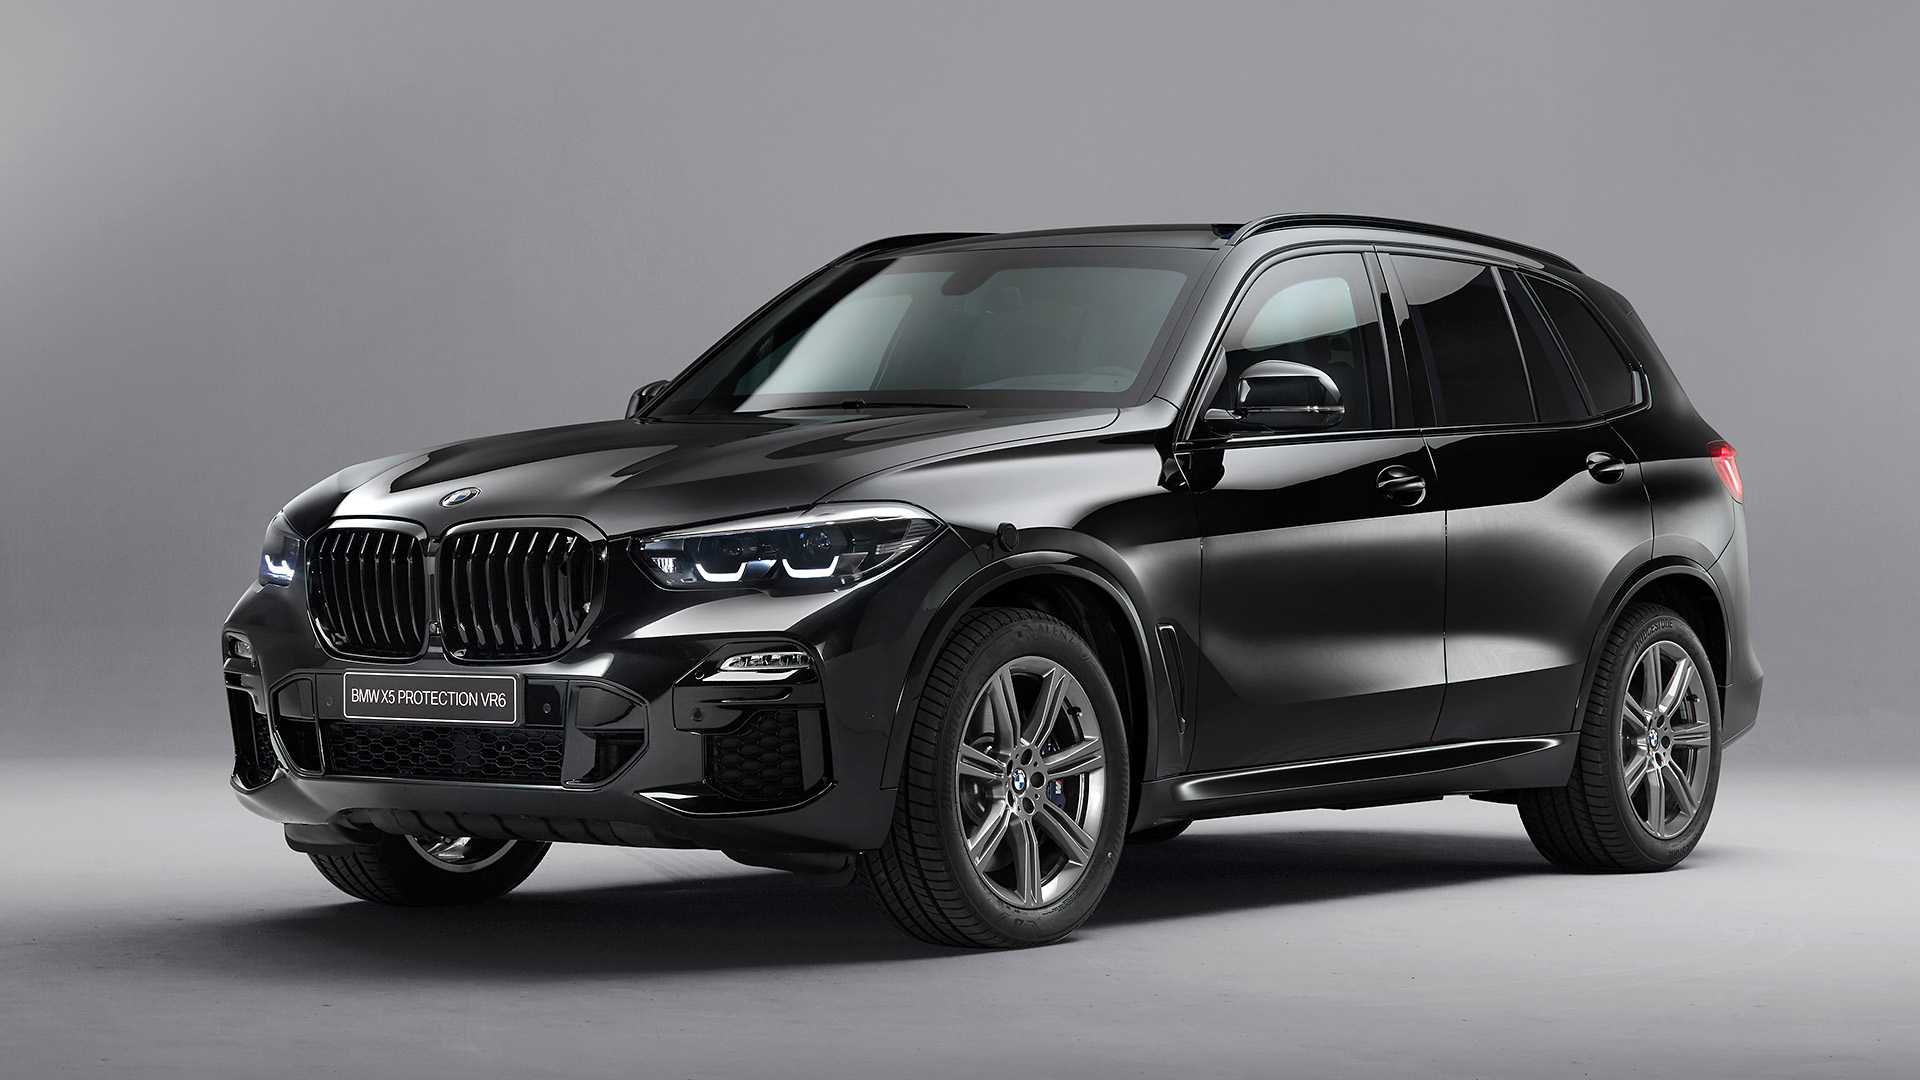 2020 BMW X5 Protection VR6 (Armored Vehicle) Front Three-Quarter Wallpapers (1)